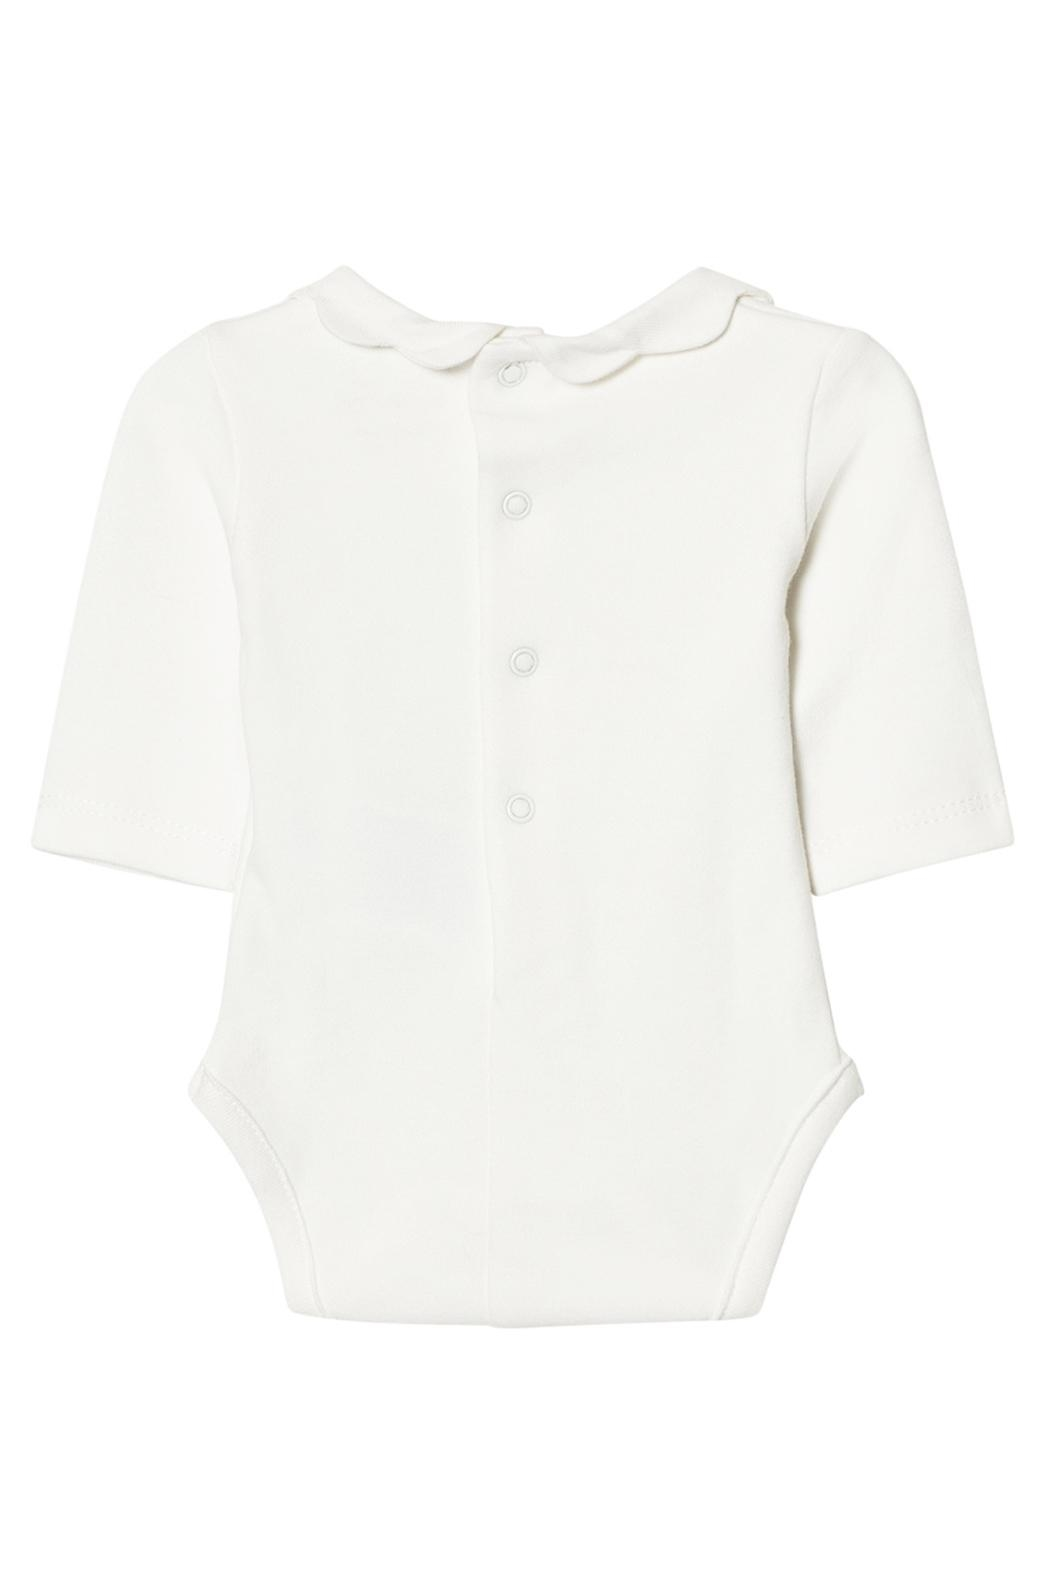 Mayoral Ivory Scallop Collar Onesie - Front Full Image